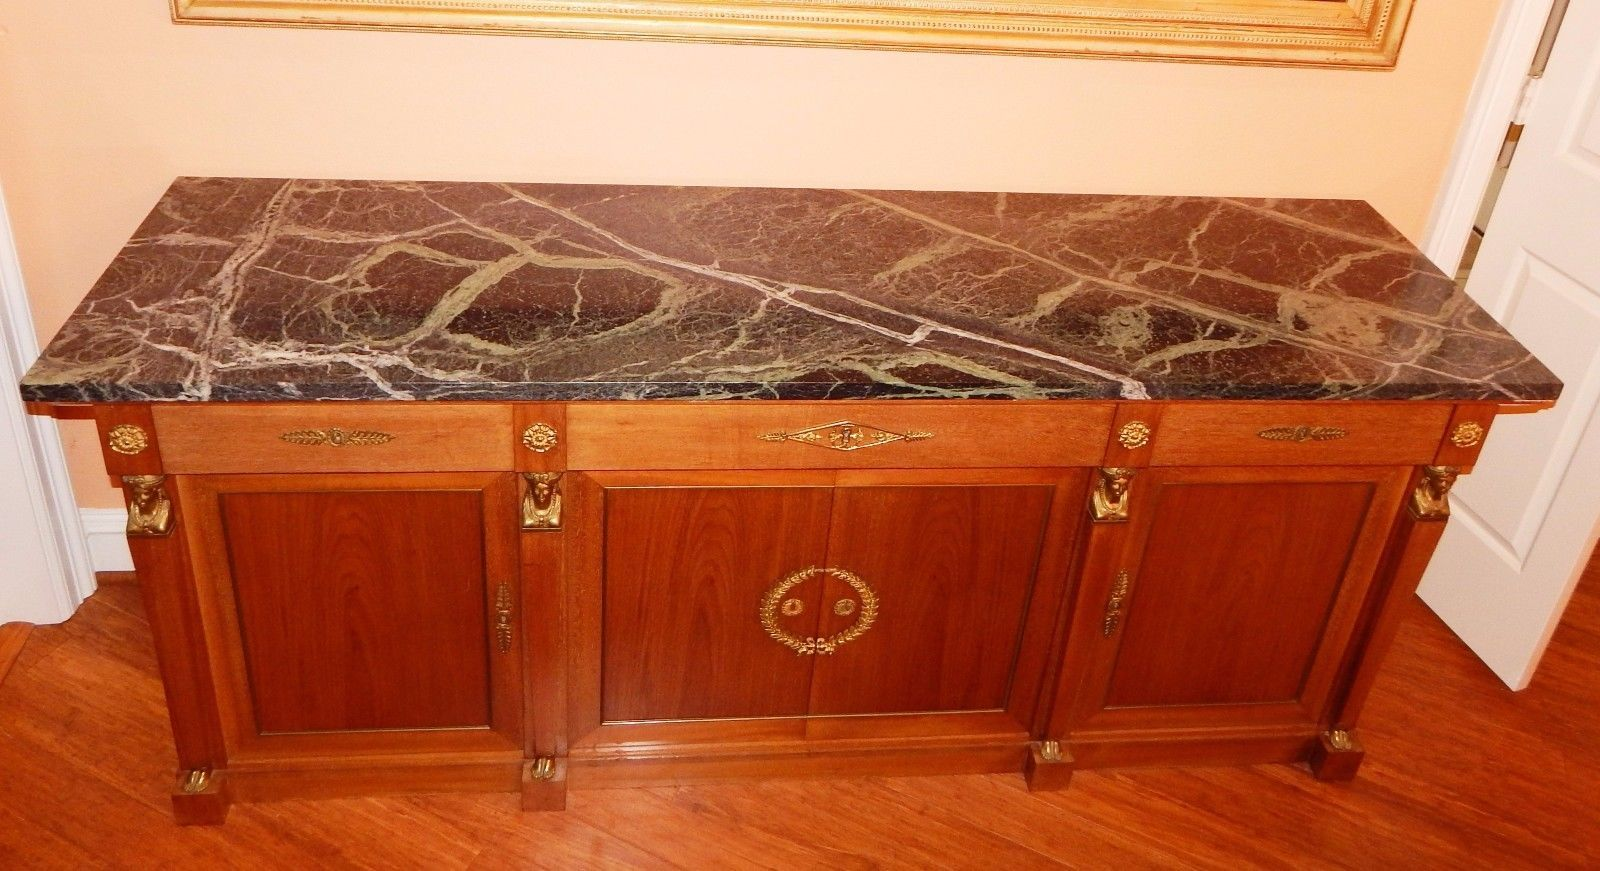 Vintage French Empire Provincial Buffet Sideboard Credenza Cabinet Marble Top https://t.co/E8bpQJJZxB https://t.co/UmFLAzxCWD